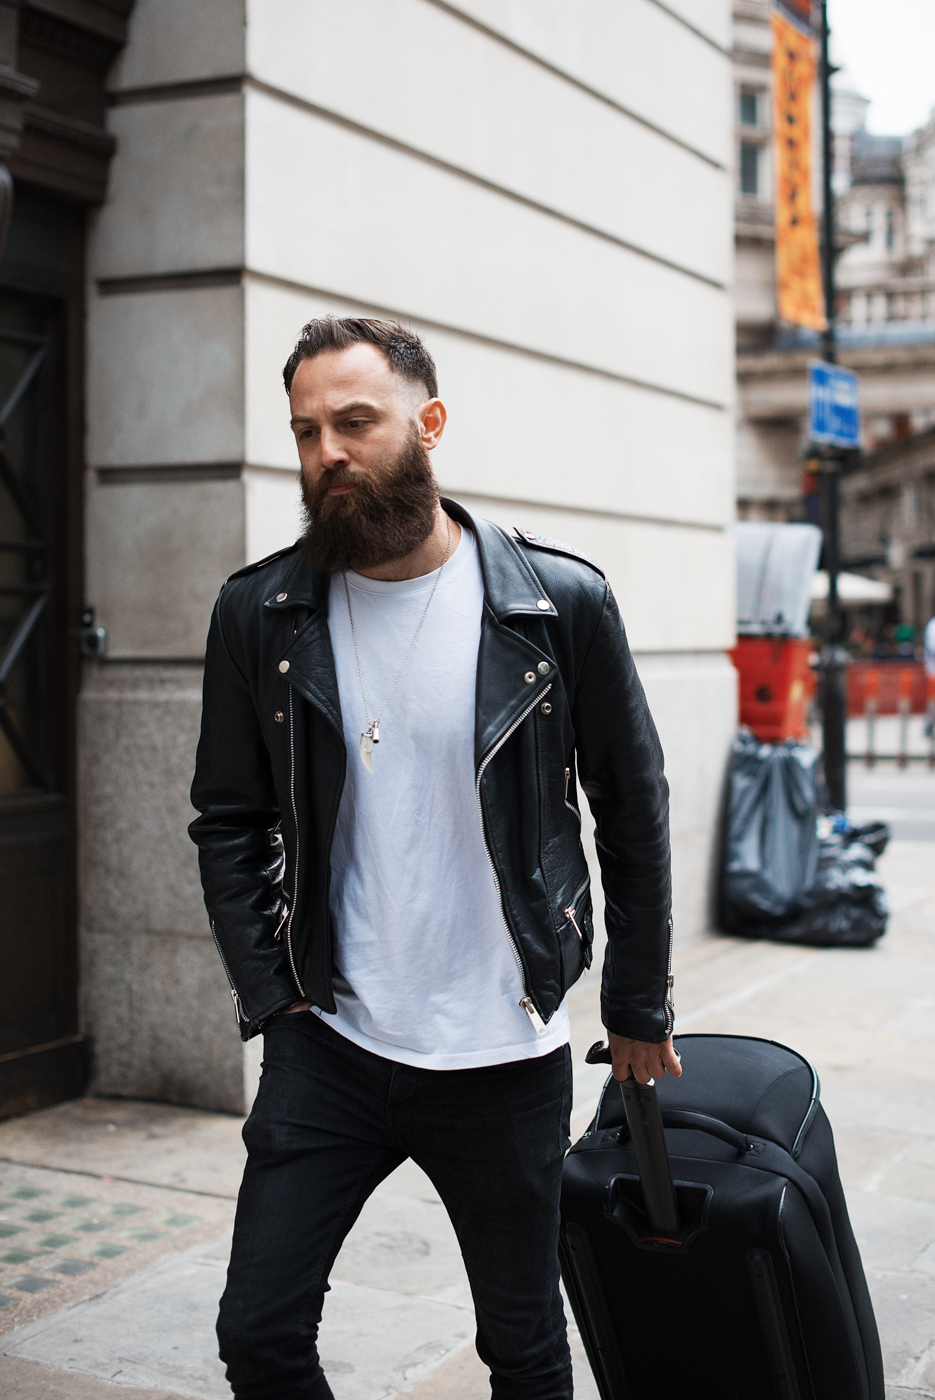 Crew.  Similar look:  Reclaimed Vintage Leather Biker Jacket .